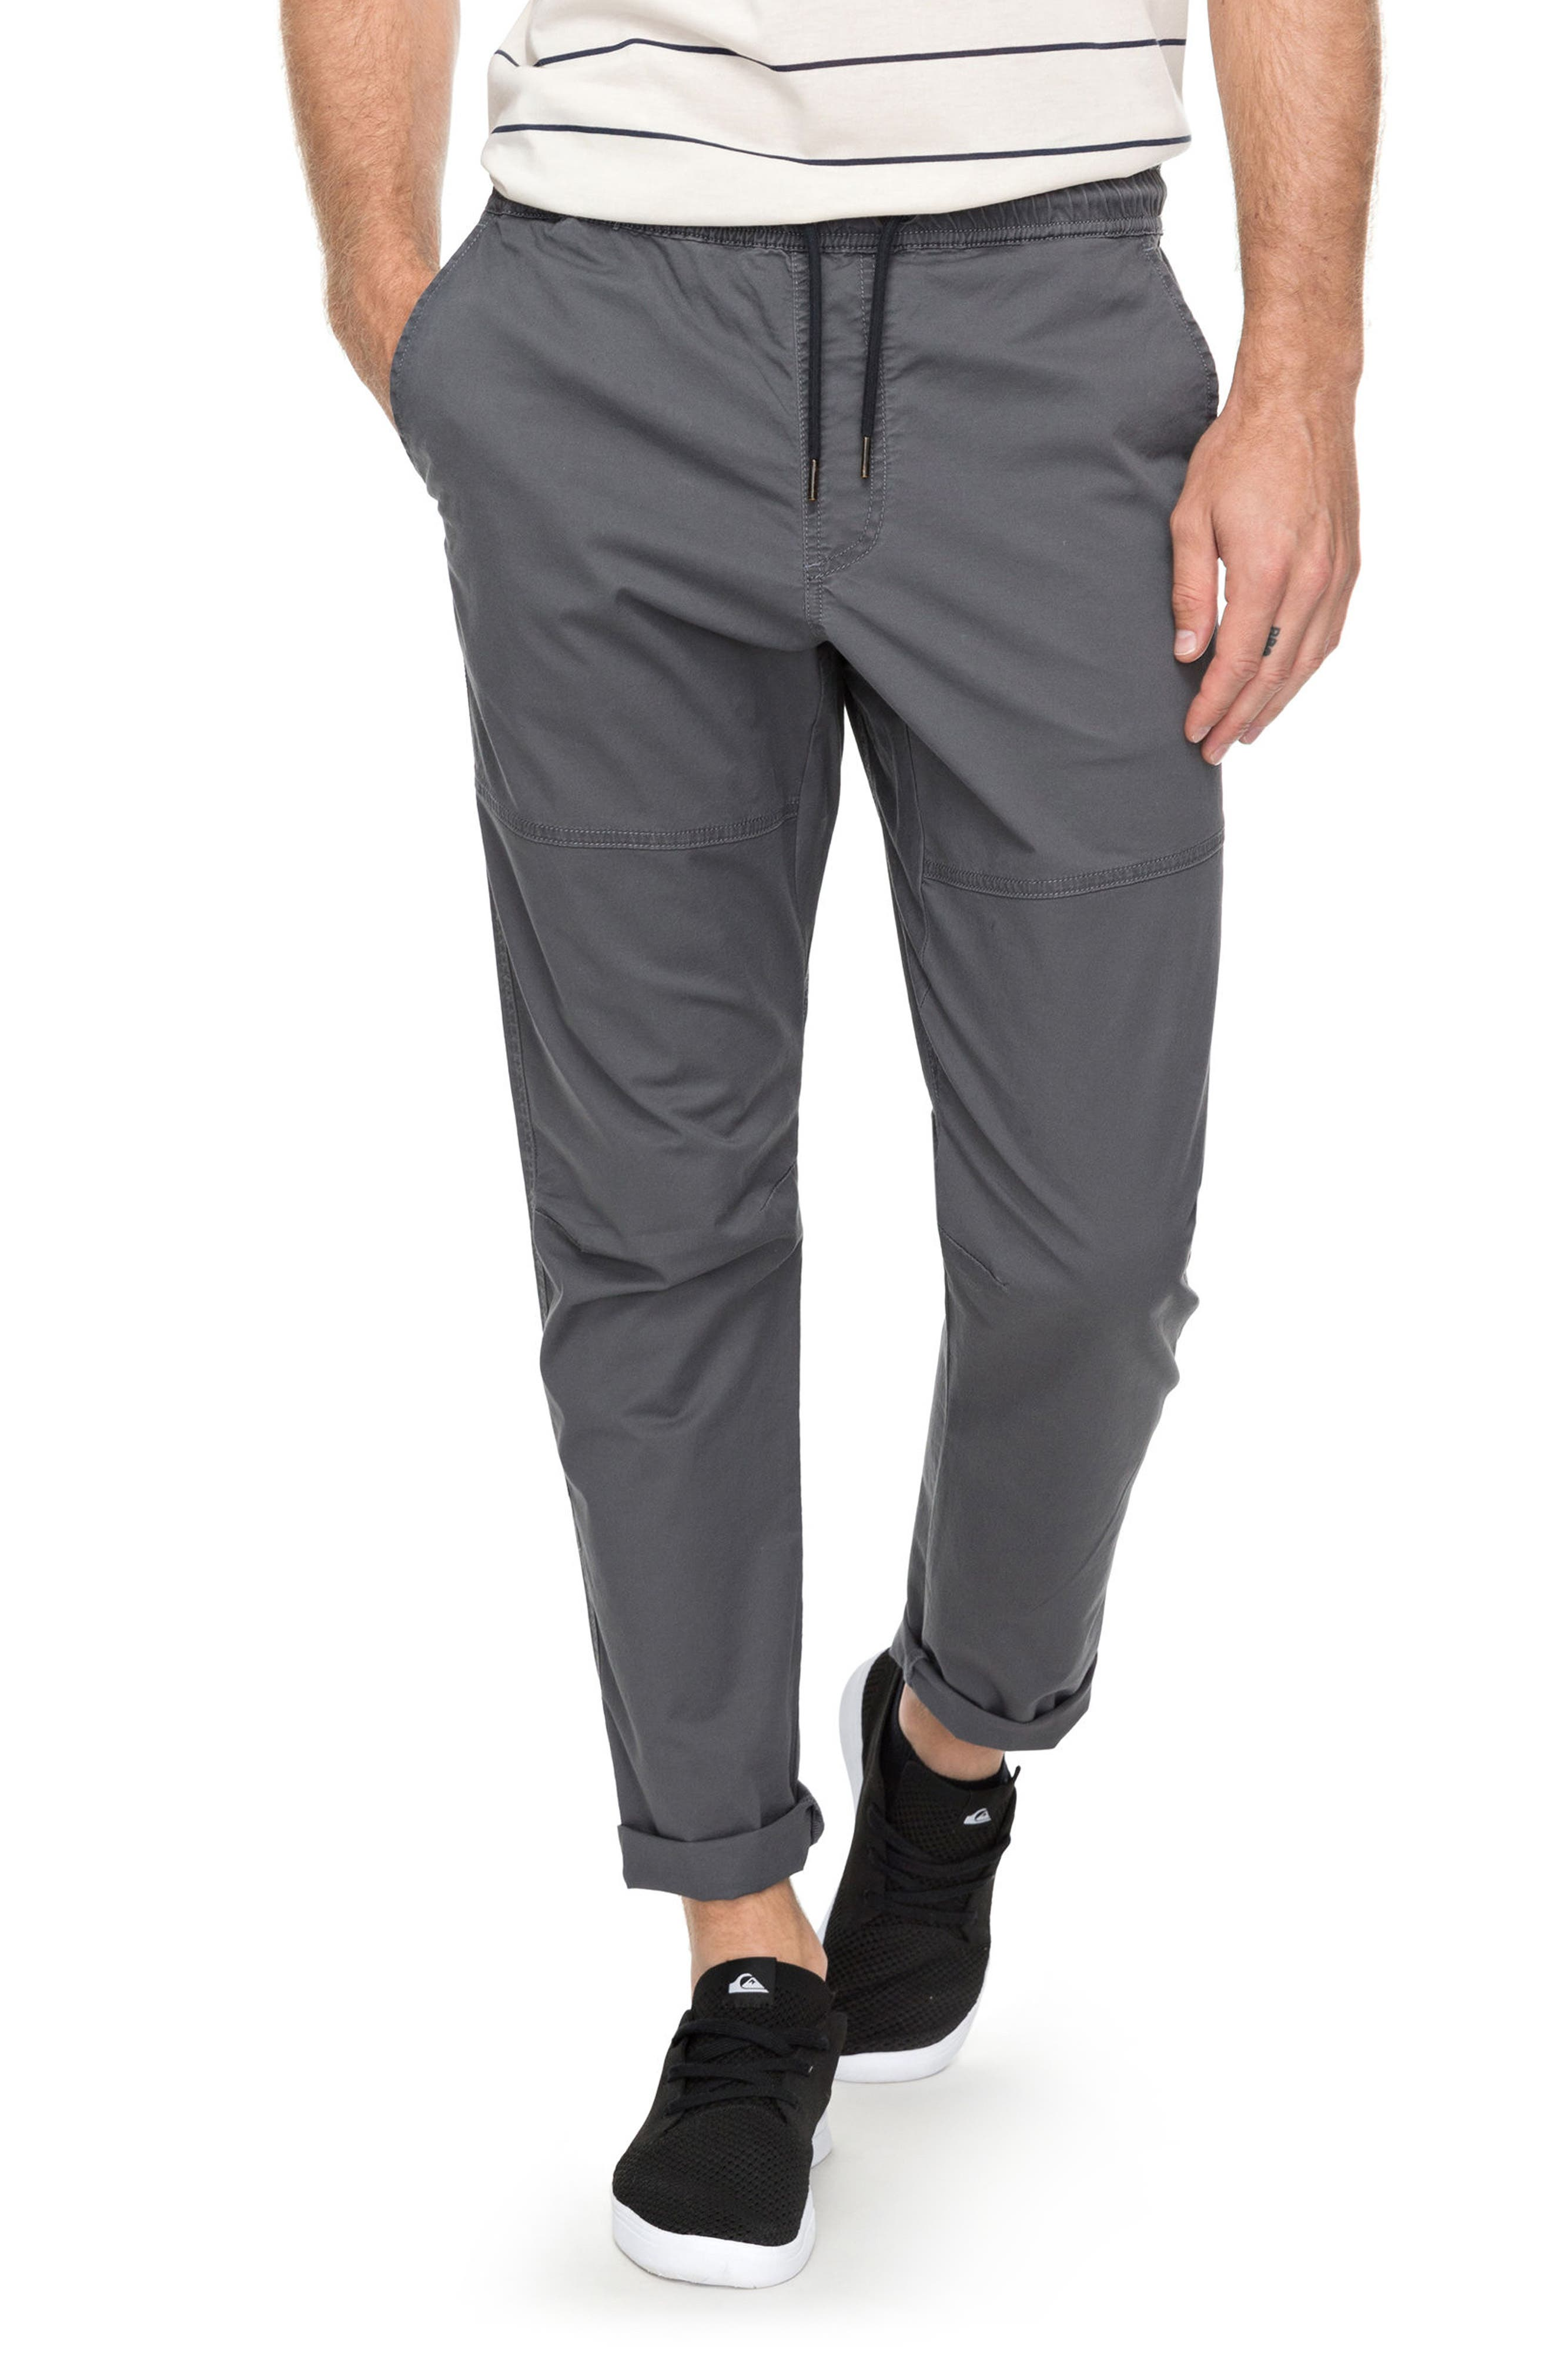 Foxoy Twill Pants,                         Main,                         color, 020